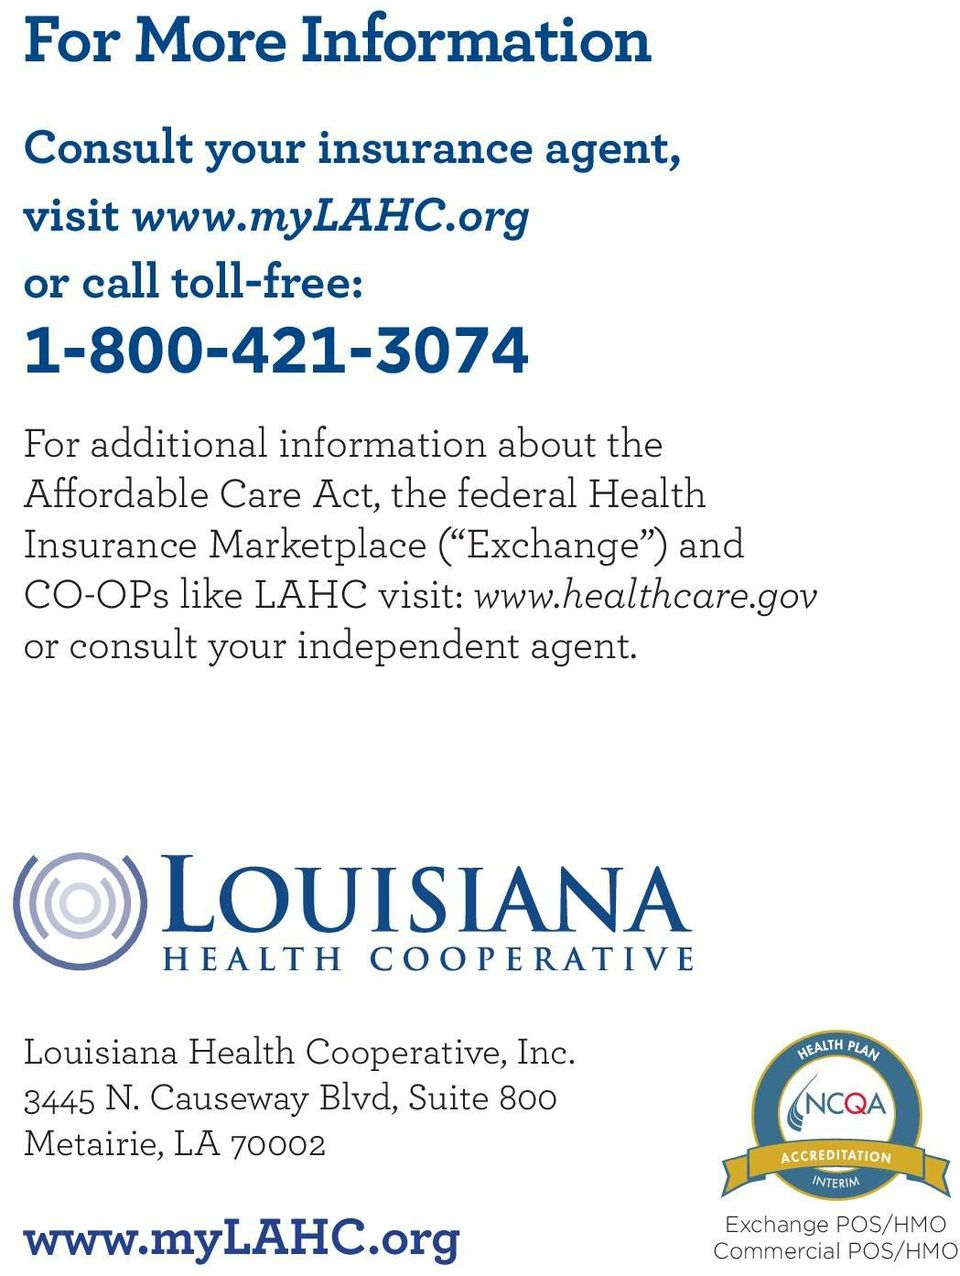 Health Insurance Marketplace ( Exchange ) and CO-OPs like LAHC visit: www.healthcare.